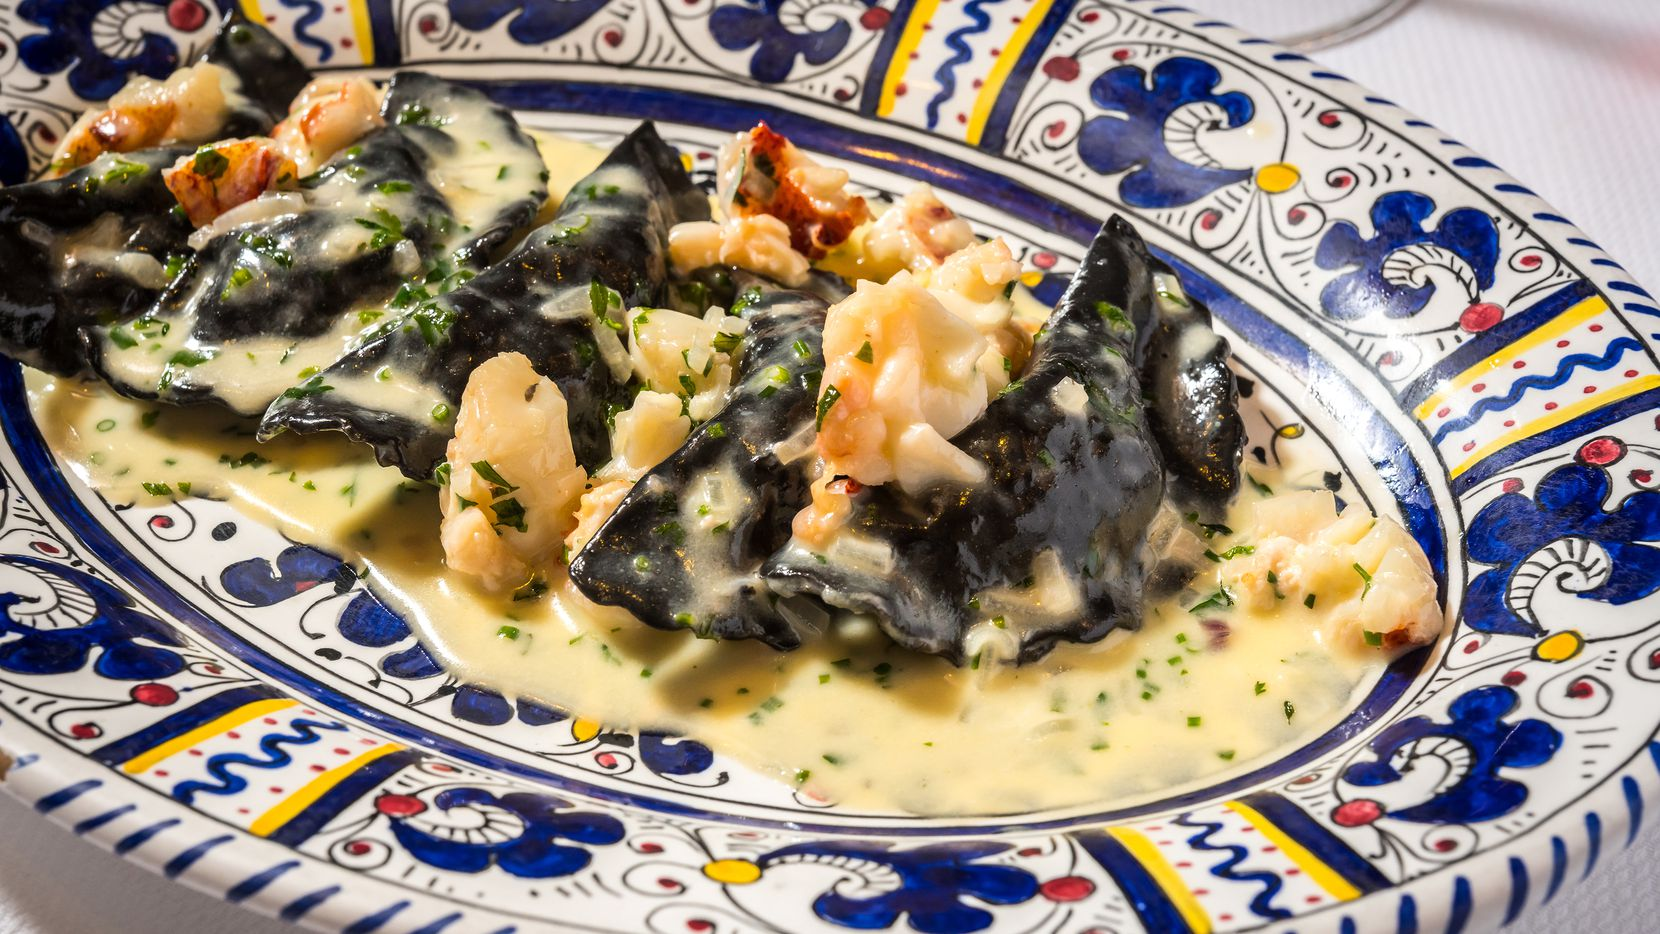 When New York style Italian restaurant Carbone opens in Dallas, it'll serve pasta, salad and more in a glamorous dining room. The mezzaluna is lobster and shrimp ravioli made with a squid ink dough and served in tarragon cream sauce.